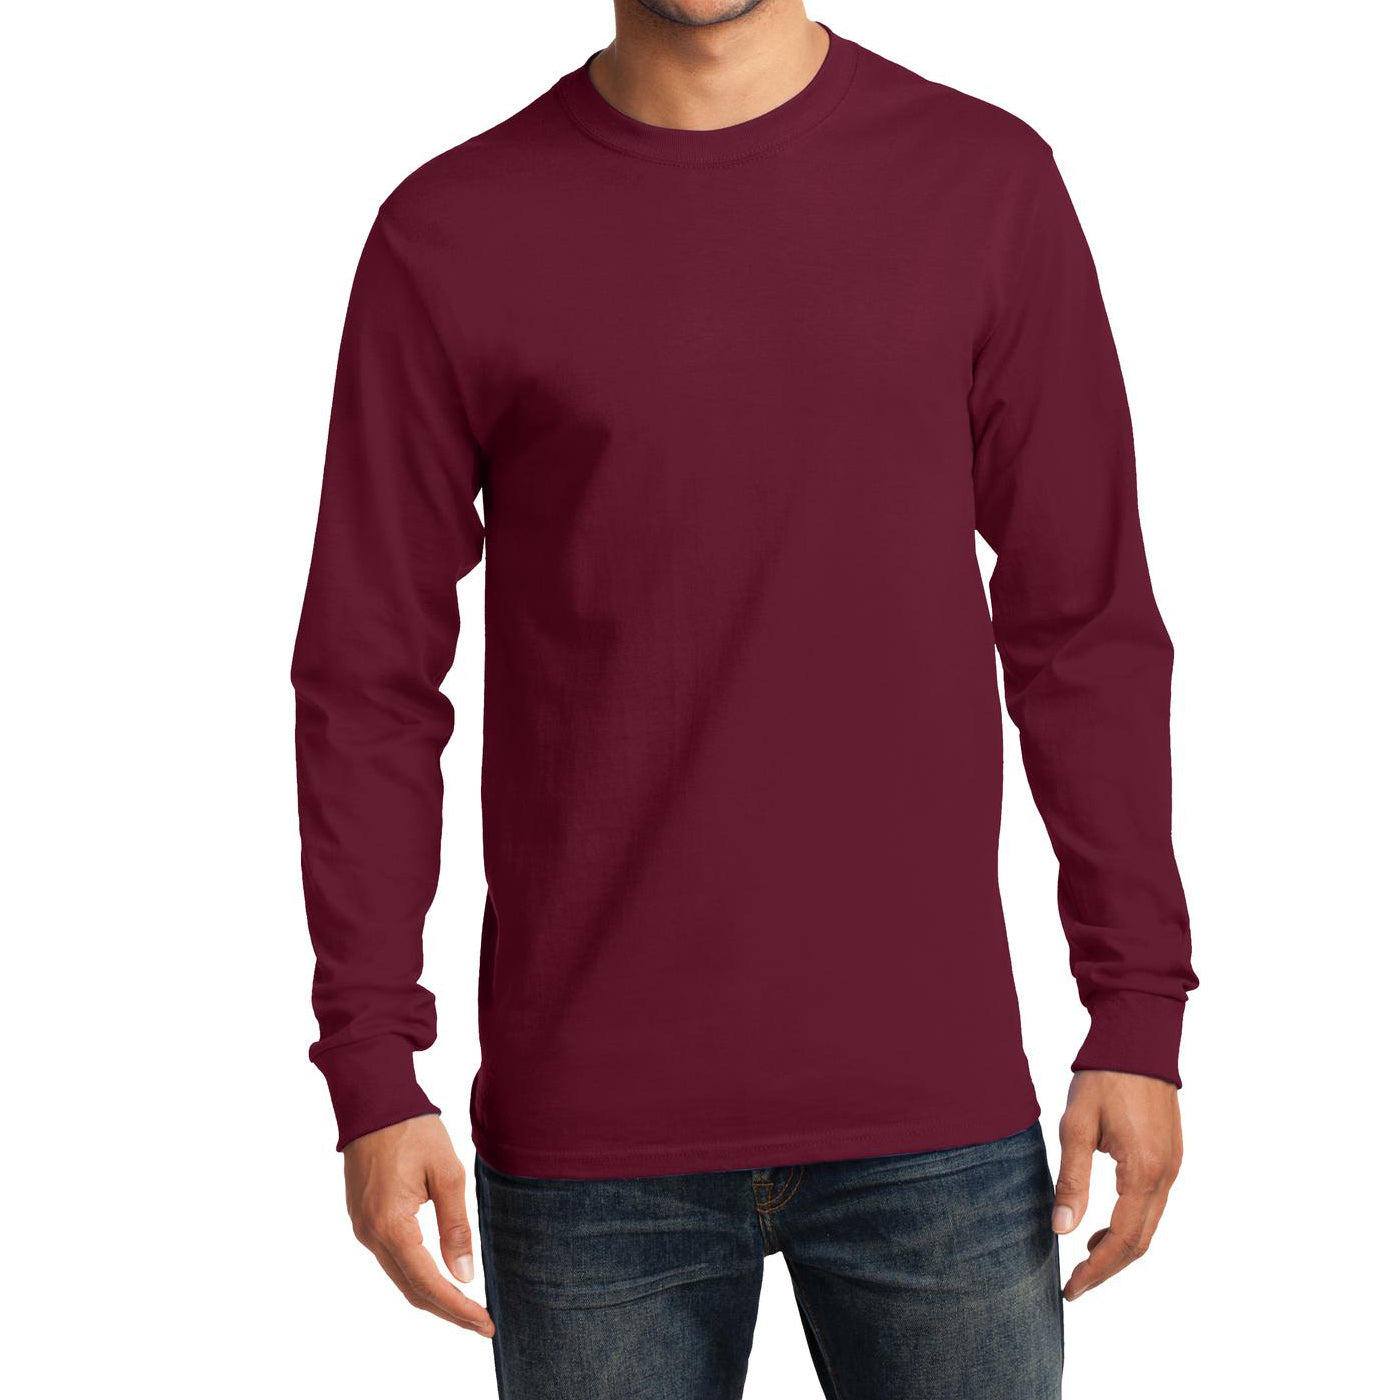 Men's Long Sleeve Essential Tee - Cardinal - Front